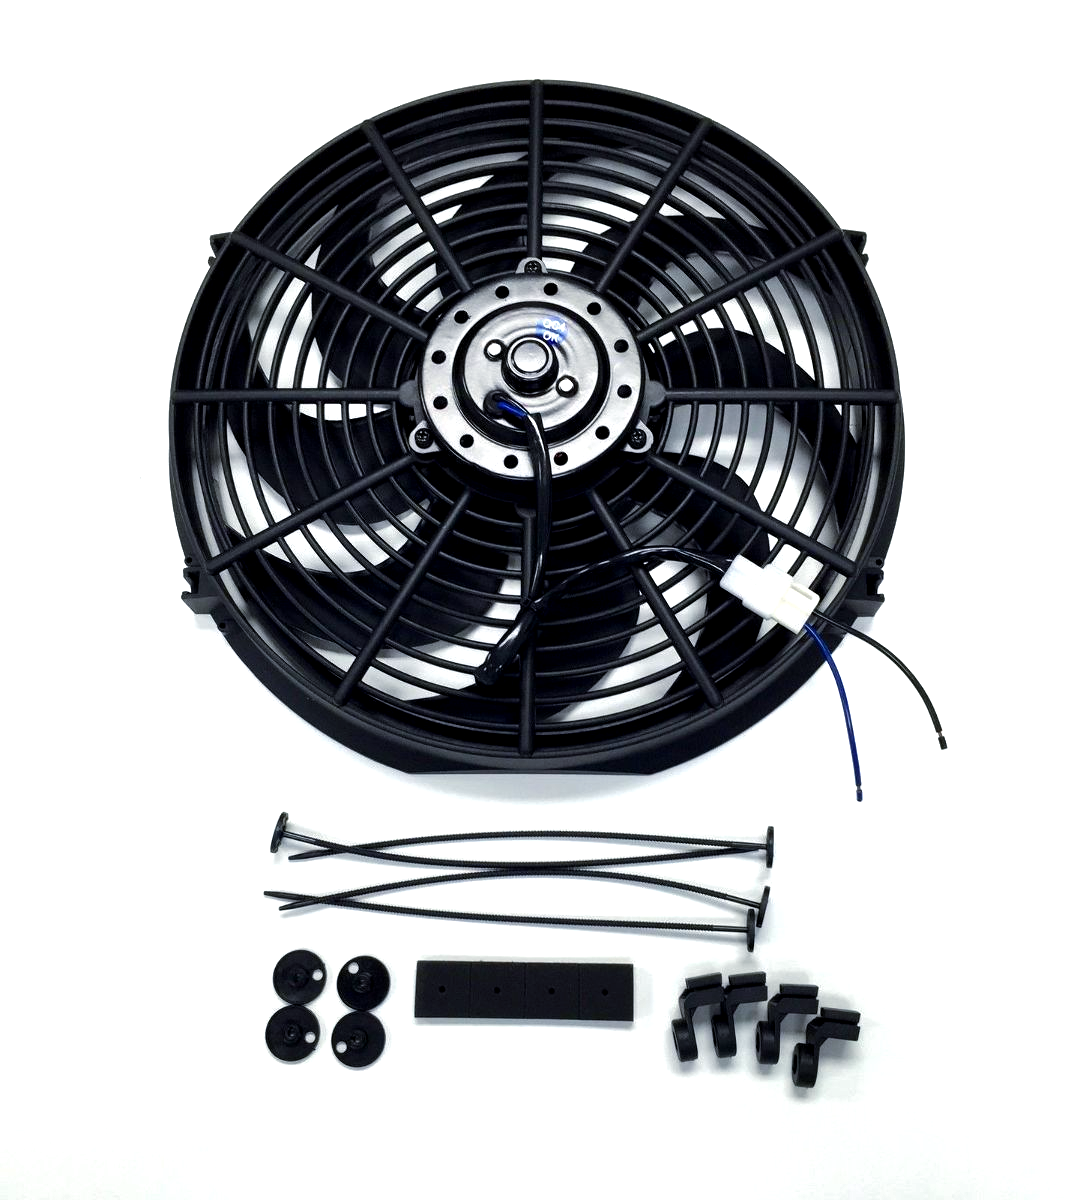 "Durable High CFM 12v Electric Curved S Blade 16/"" Radiator Cooling Fan Black ABS"